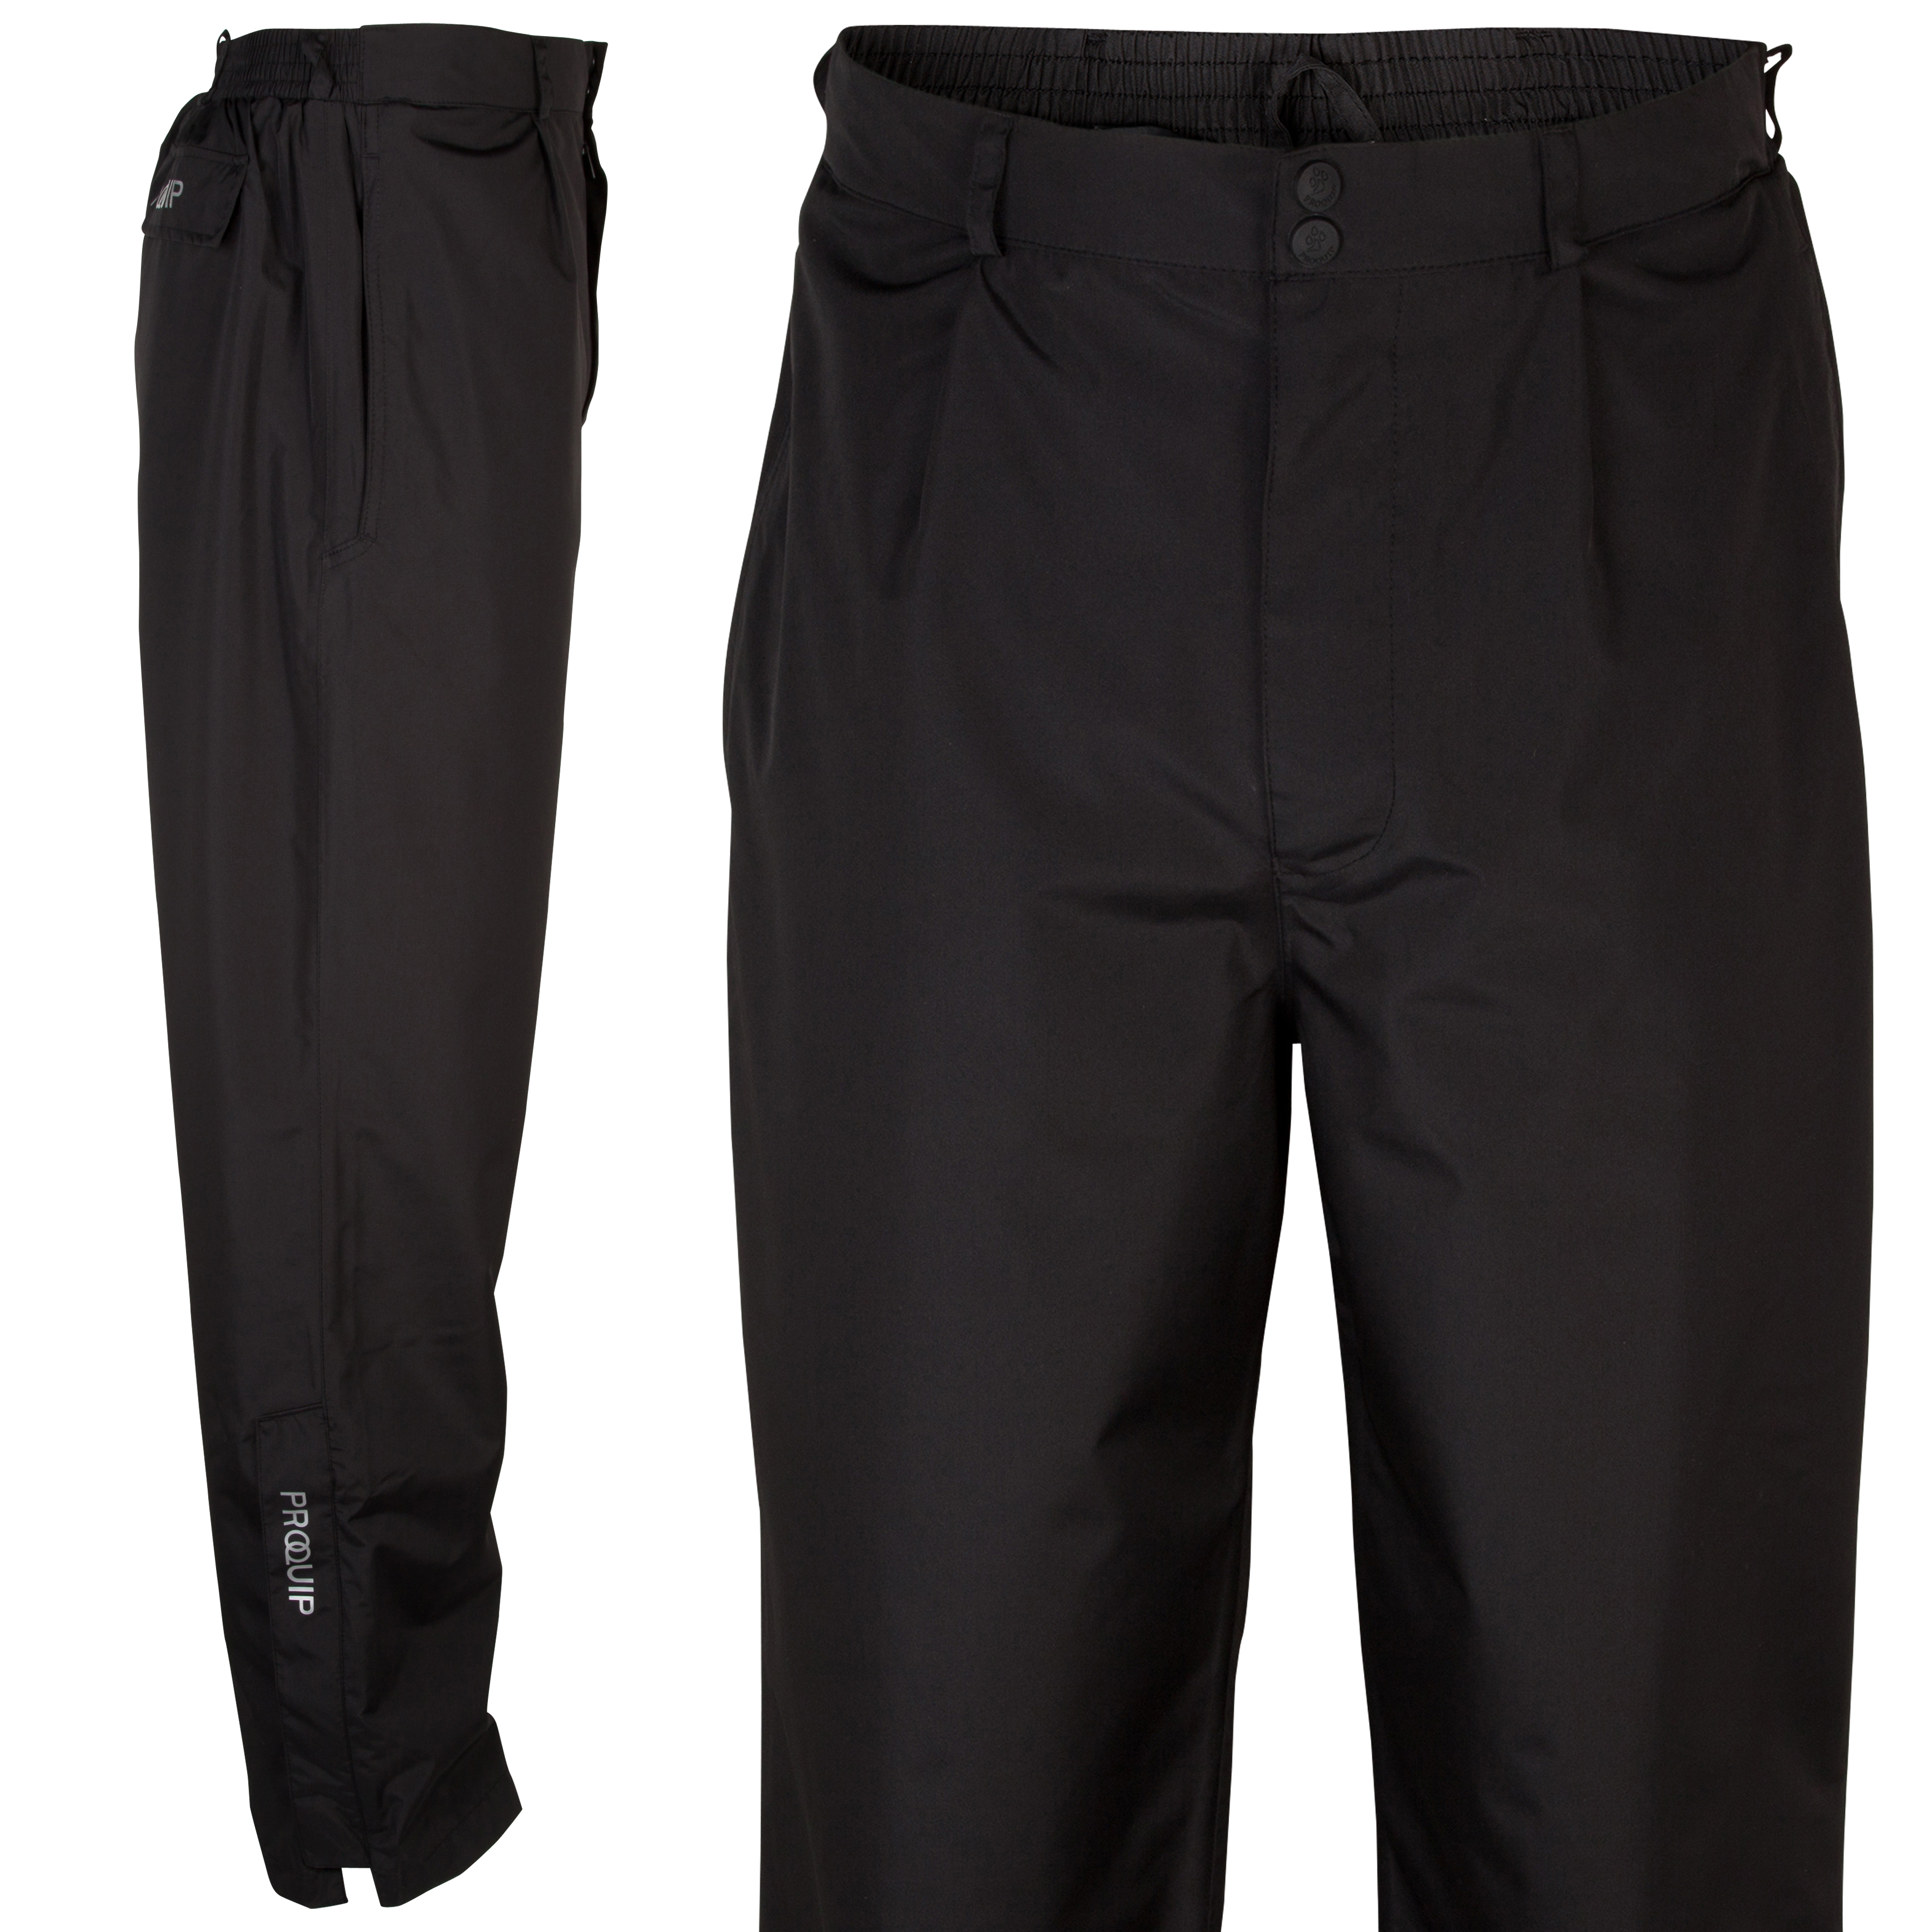 The 2014 Ryder Cup Pro-Quip Ultralite Europa Waterproof Trousers - Black